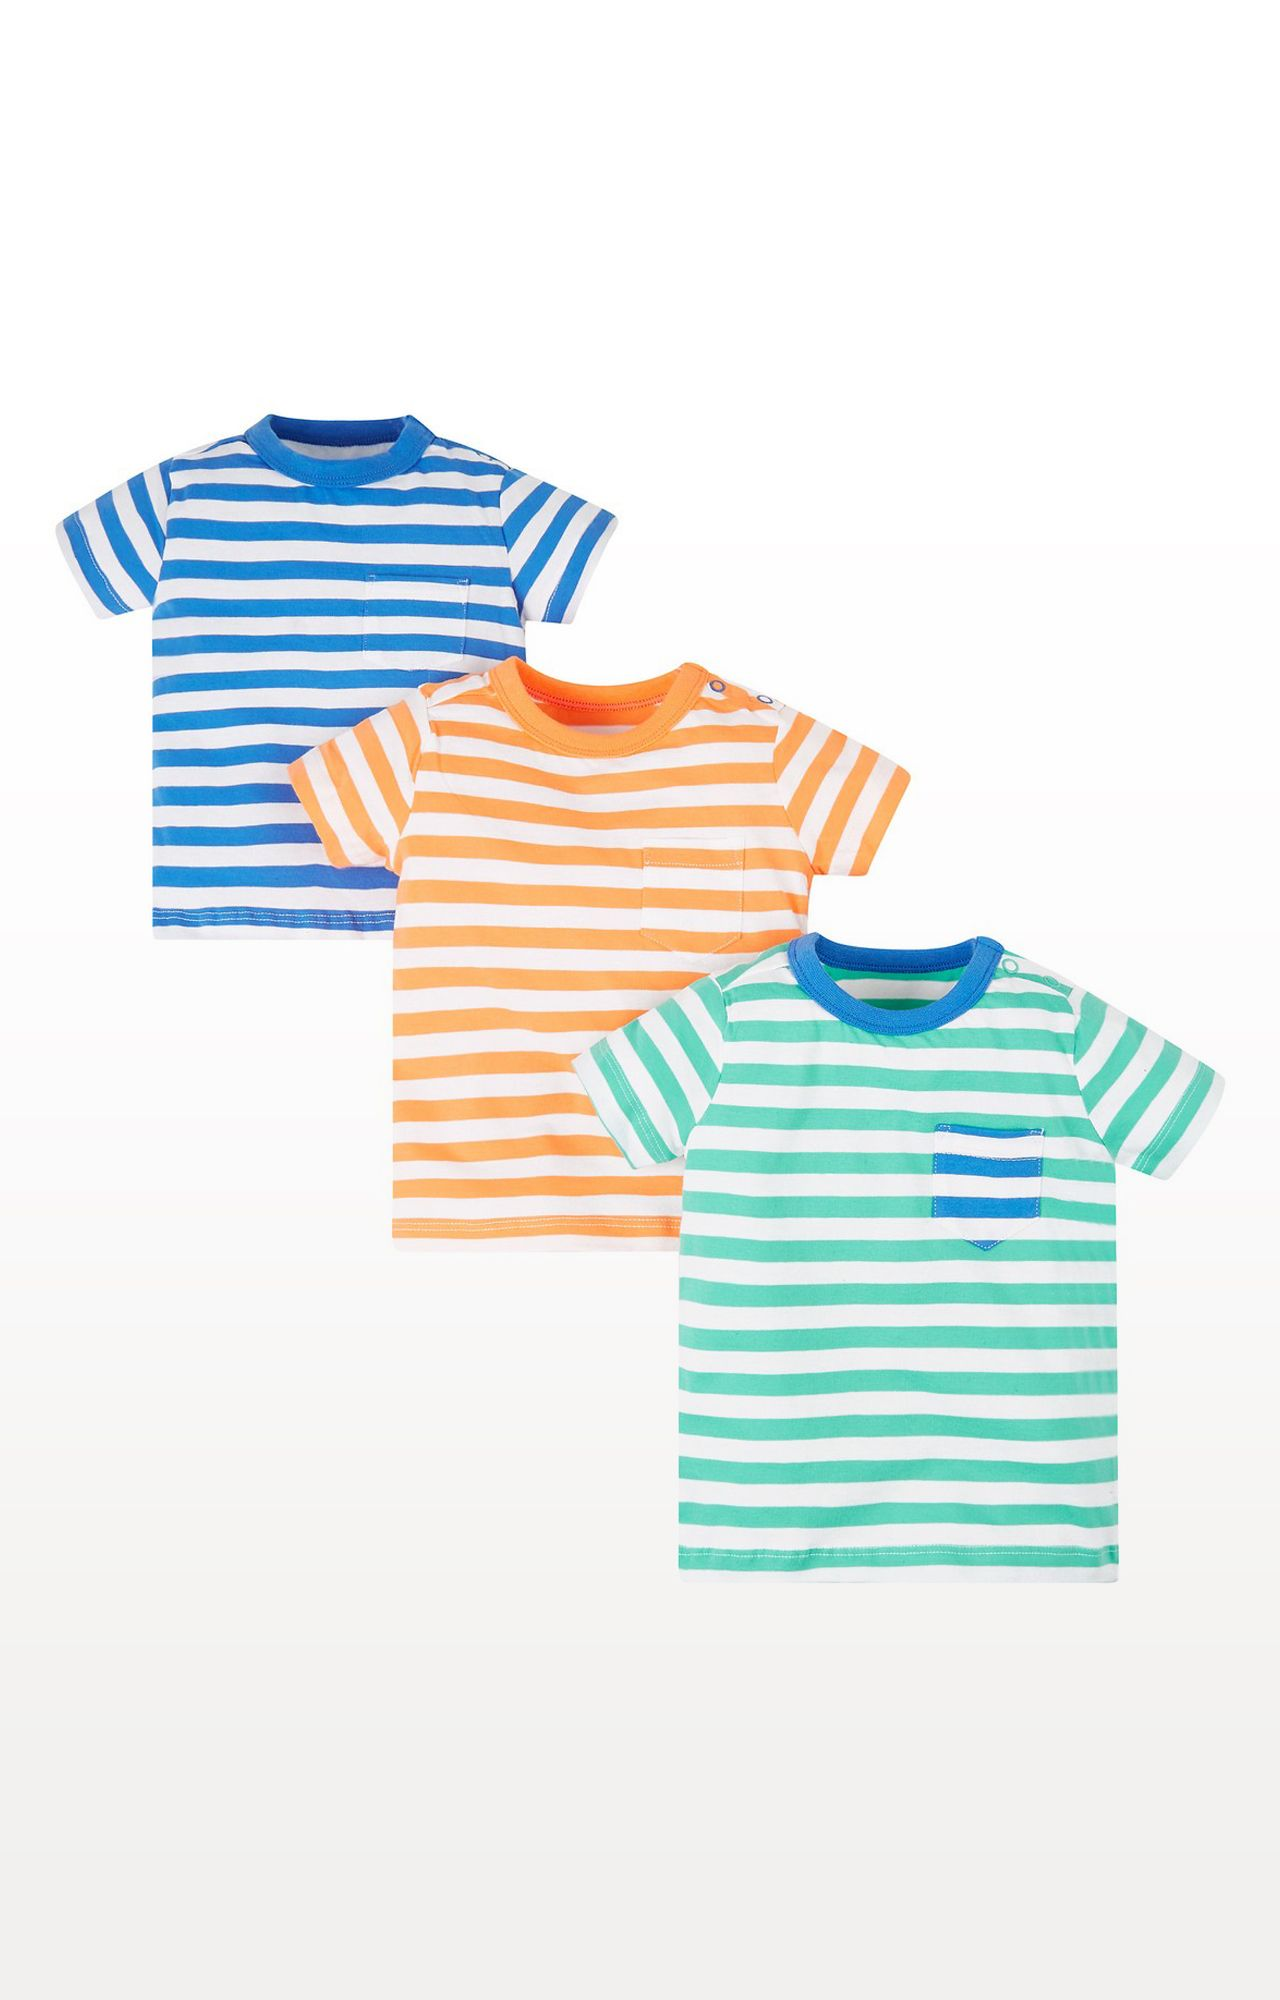 Mothercare | Green Printed Stripe T-Shirts - Pack of 3